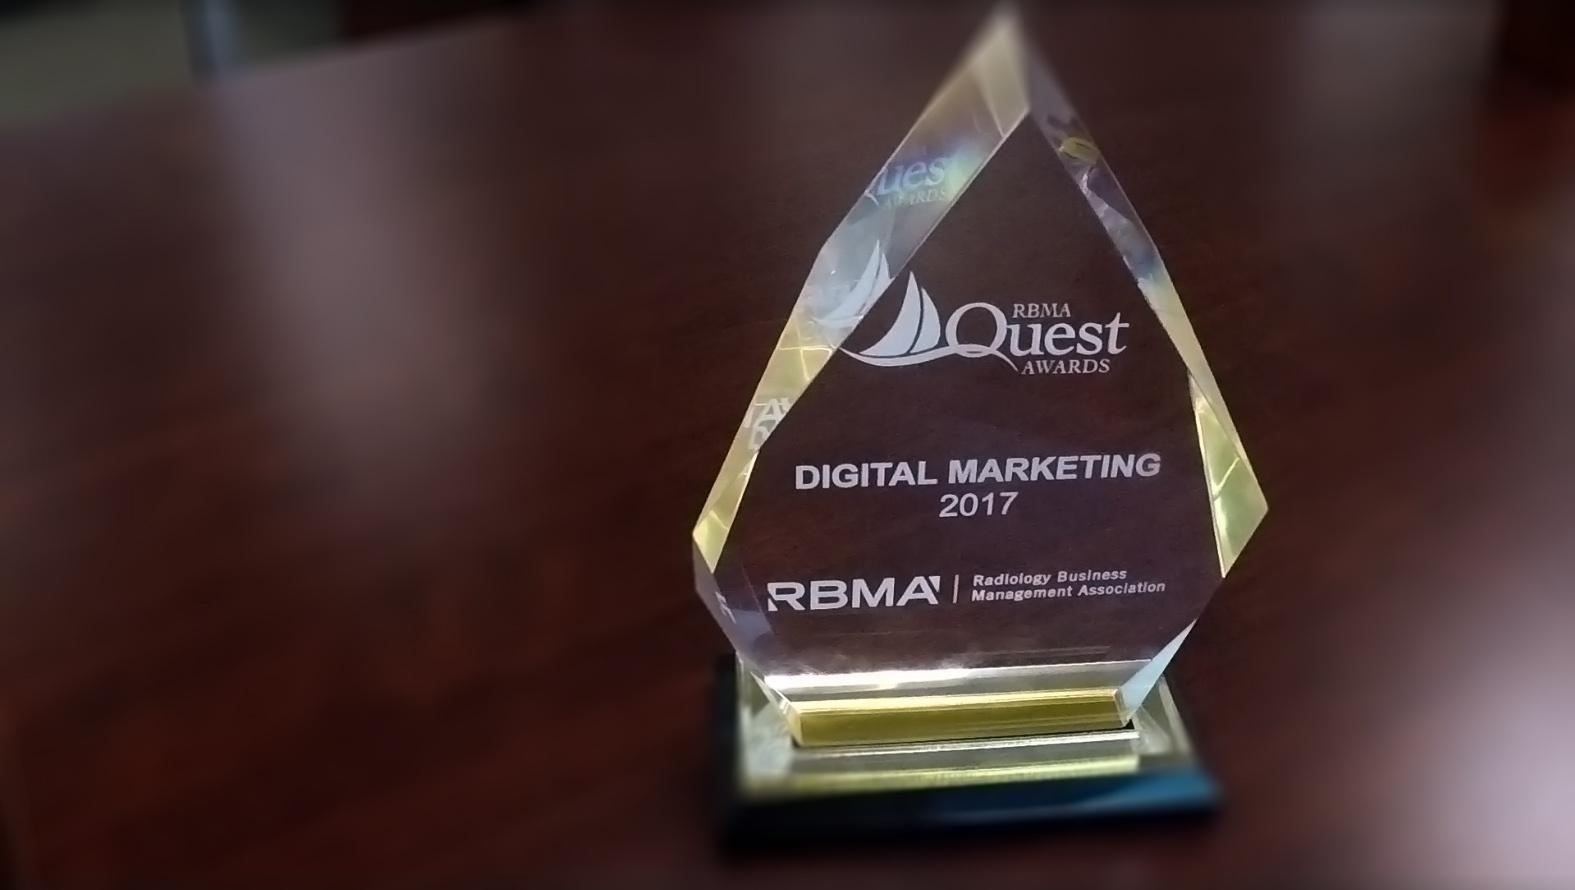 Digital Marketing Award from RBMA